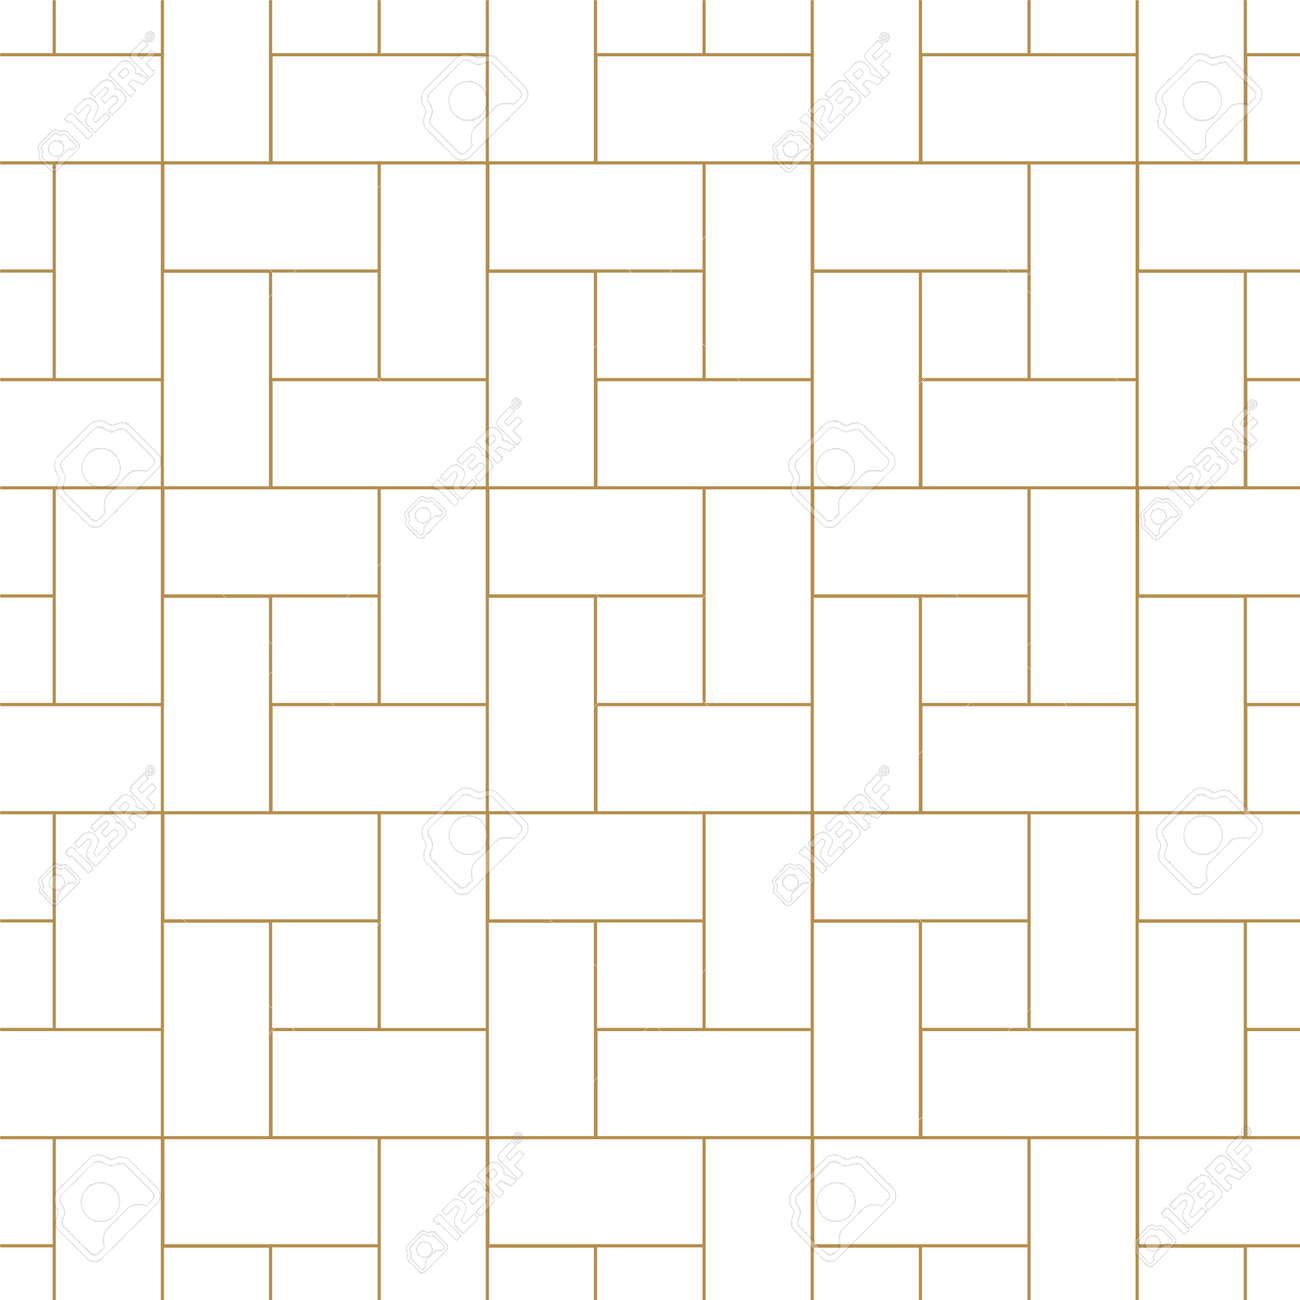 Vector seamless geometric outline simple pattern. Thin grid linear texture. Abstract minimalistic repeatable background. - 151872657